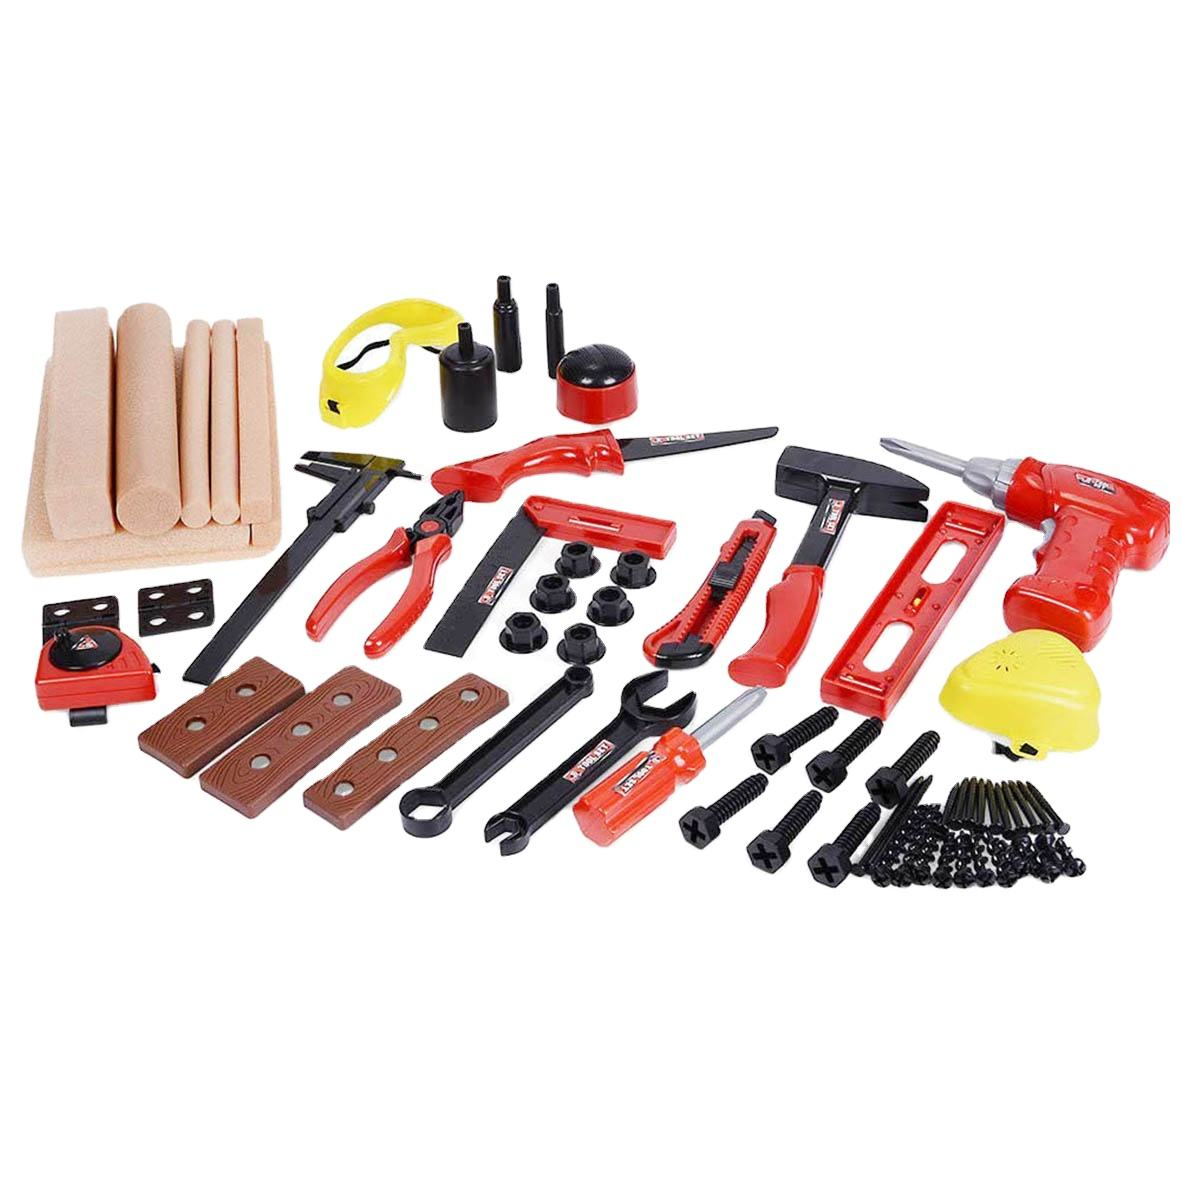 DIY Deluxe Foam Wood Kids Carpentry Construction Engineering Tools Workshop Kit STEM Pretend Play Tool Toys Set for Kids